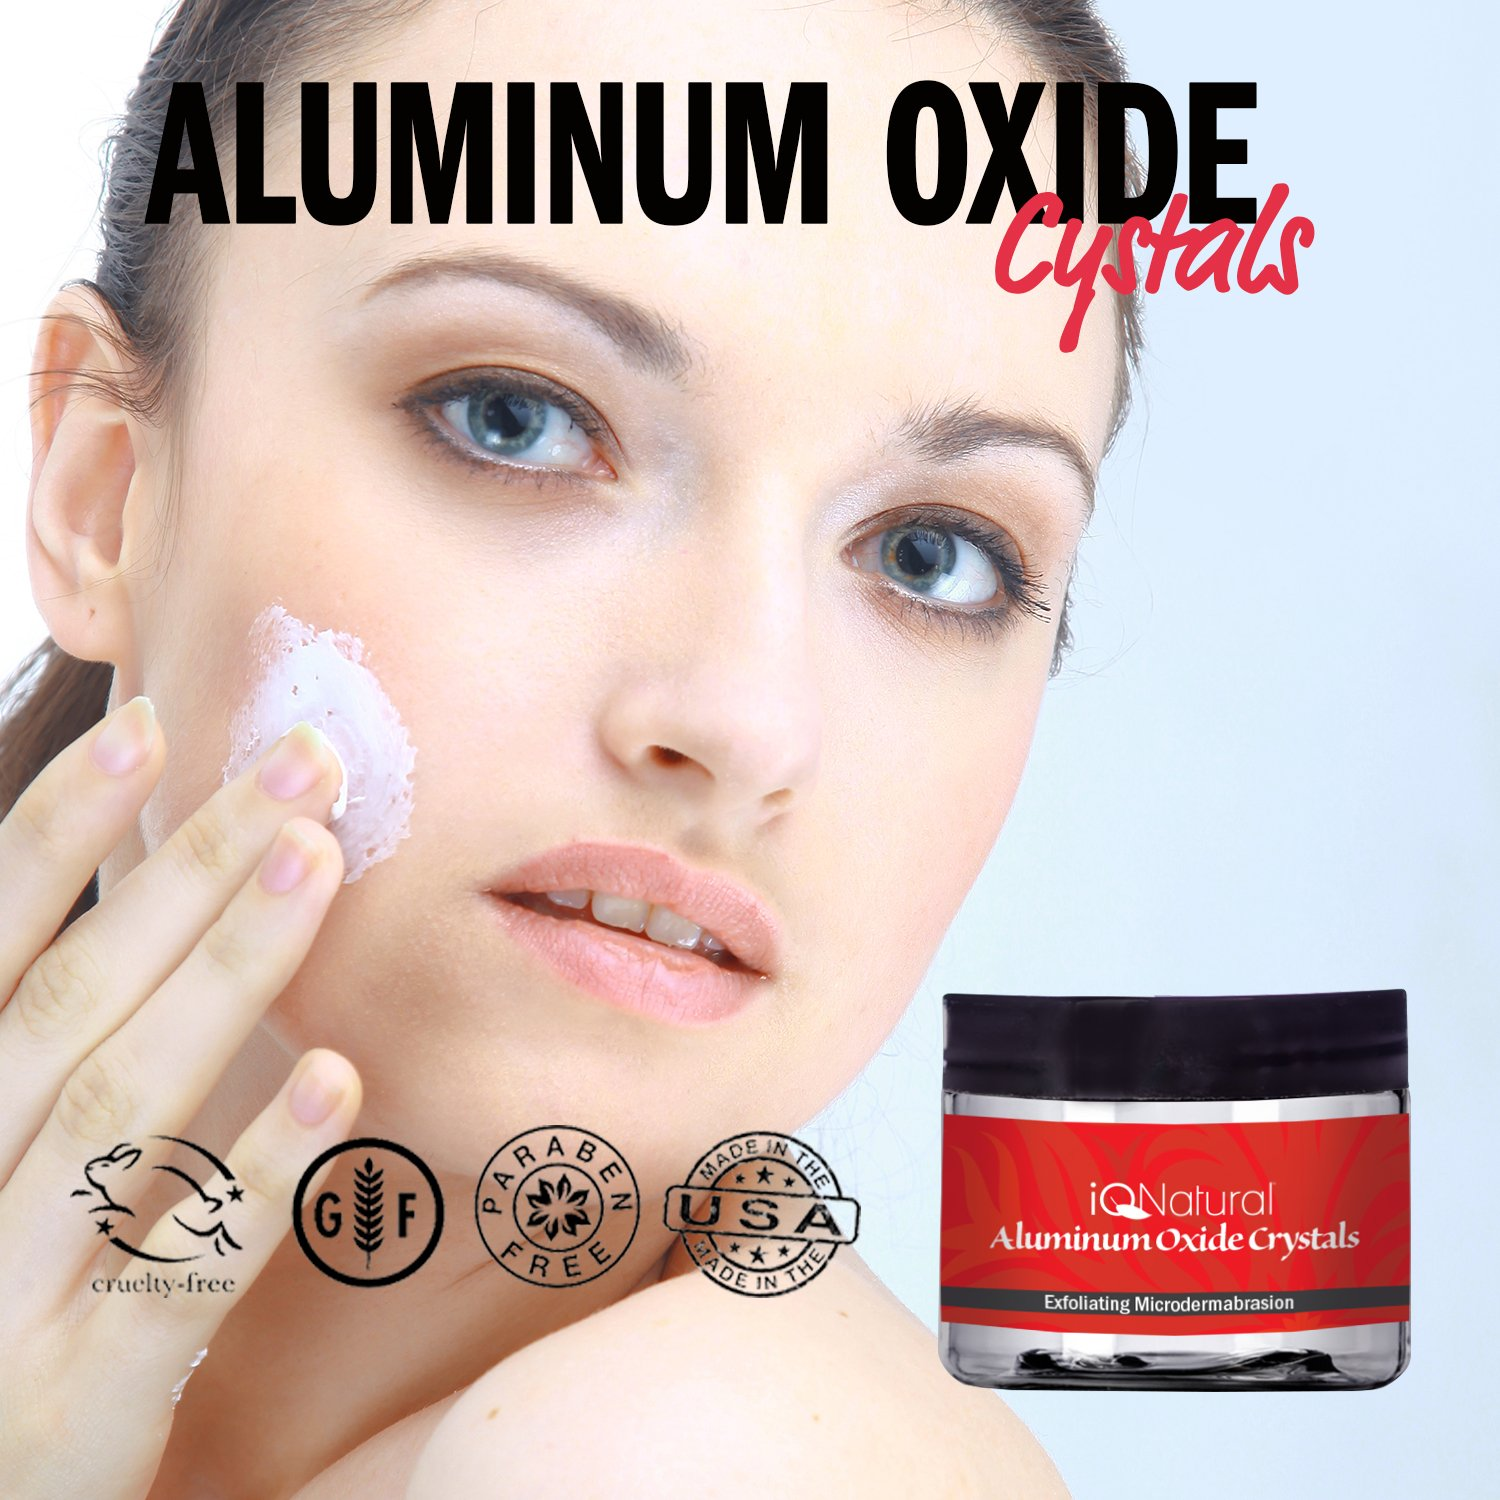 Amazon.com : Premium Microdermabrasion Crystals Face Scrub | DIY Spa Micro Dermabrasion Skin Exfoliation with 120 Grit Pure White Aluminum Oxide | Face ...